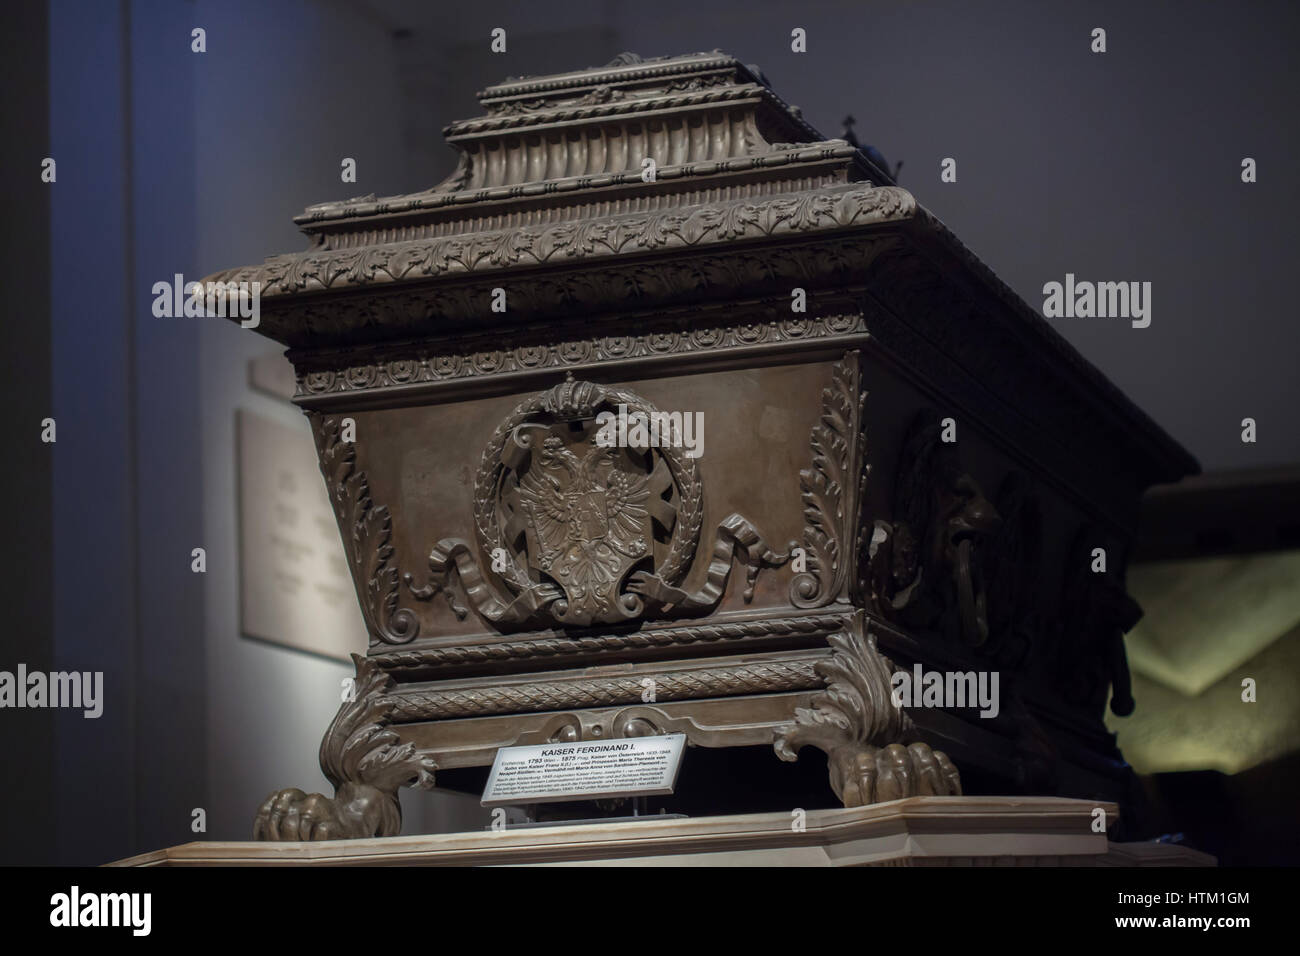 Sarcophagus of the Emperor Ferdinand I of Austria (1793 - 1875) in the Kaisergruft (Imperial Crypt) in Vienna, Austria. - Stock Image